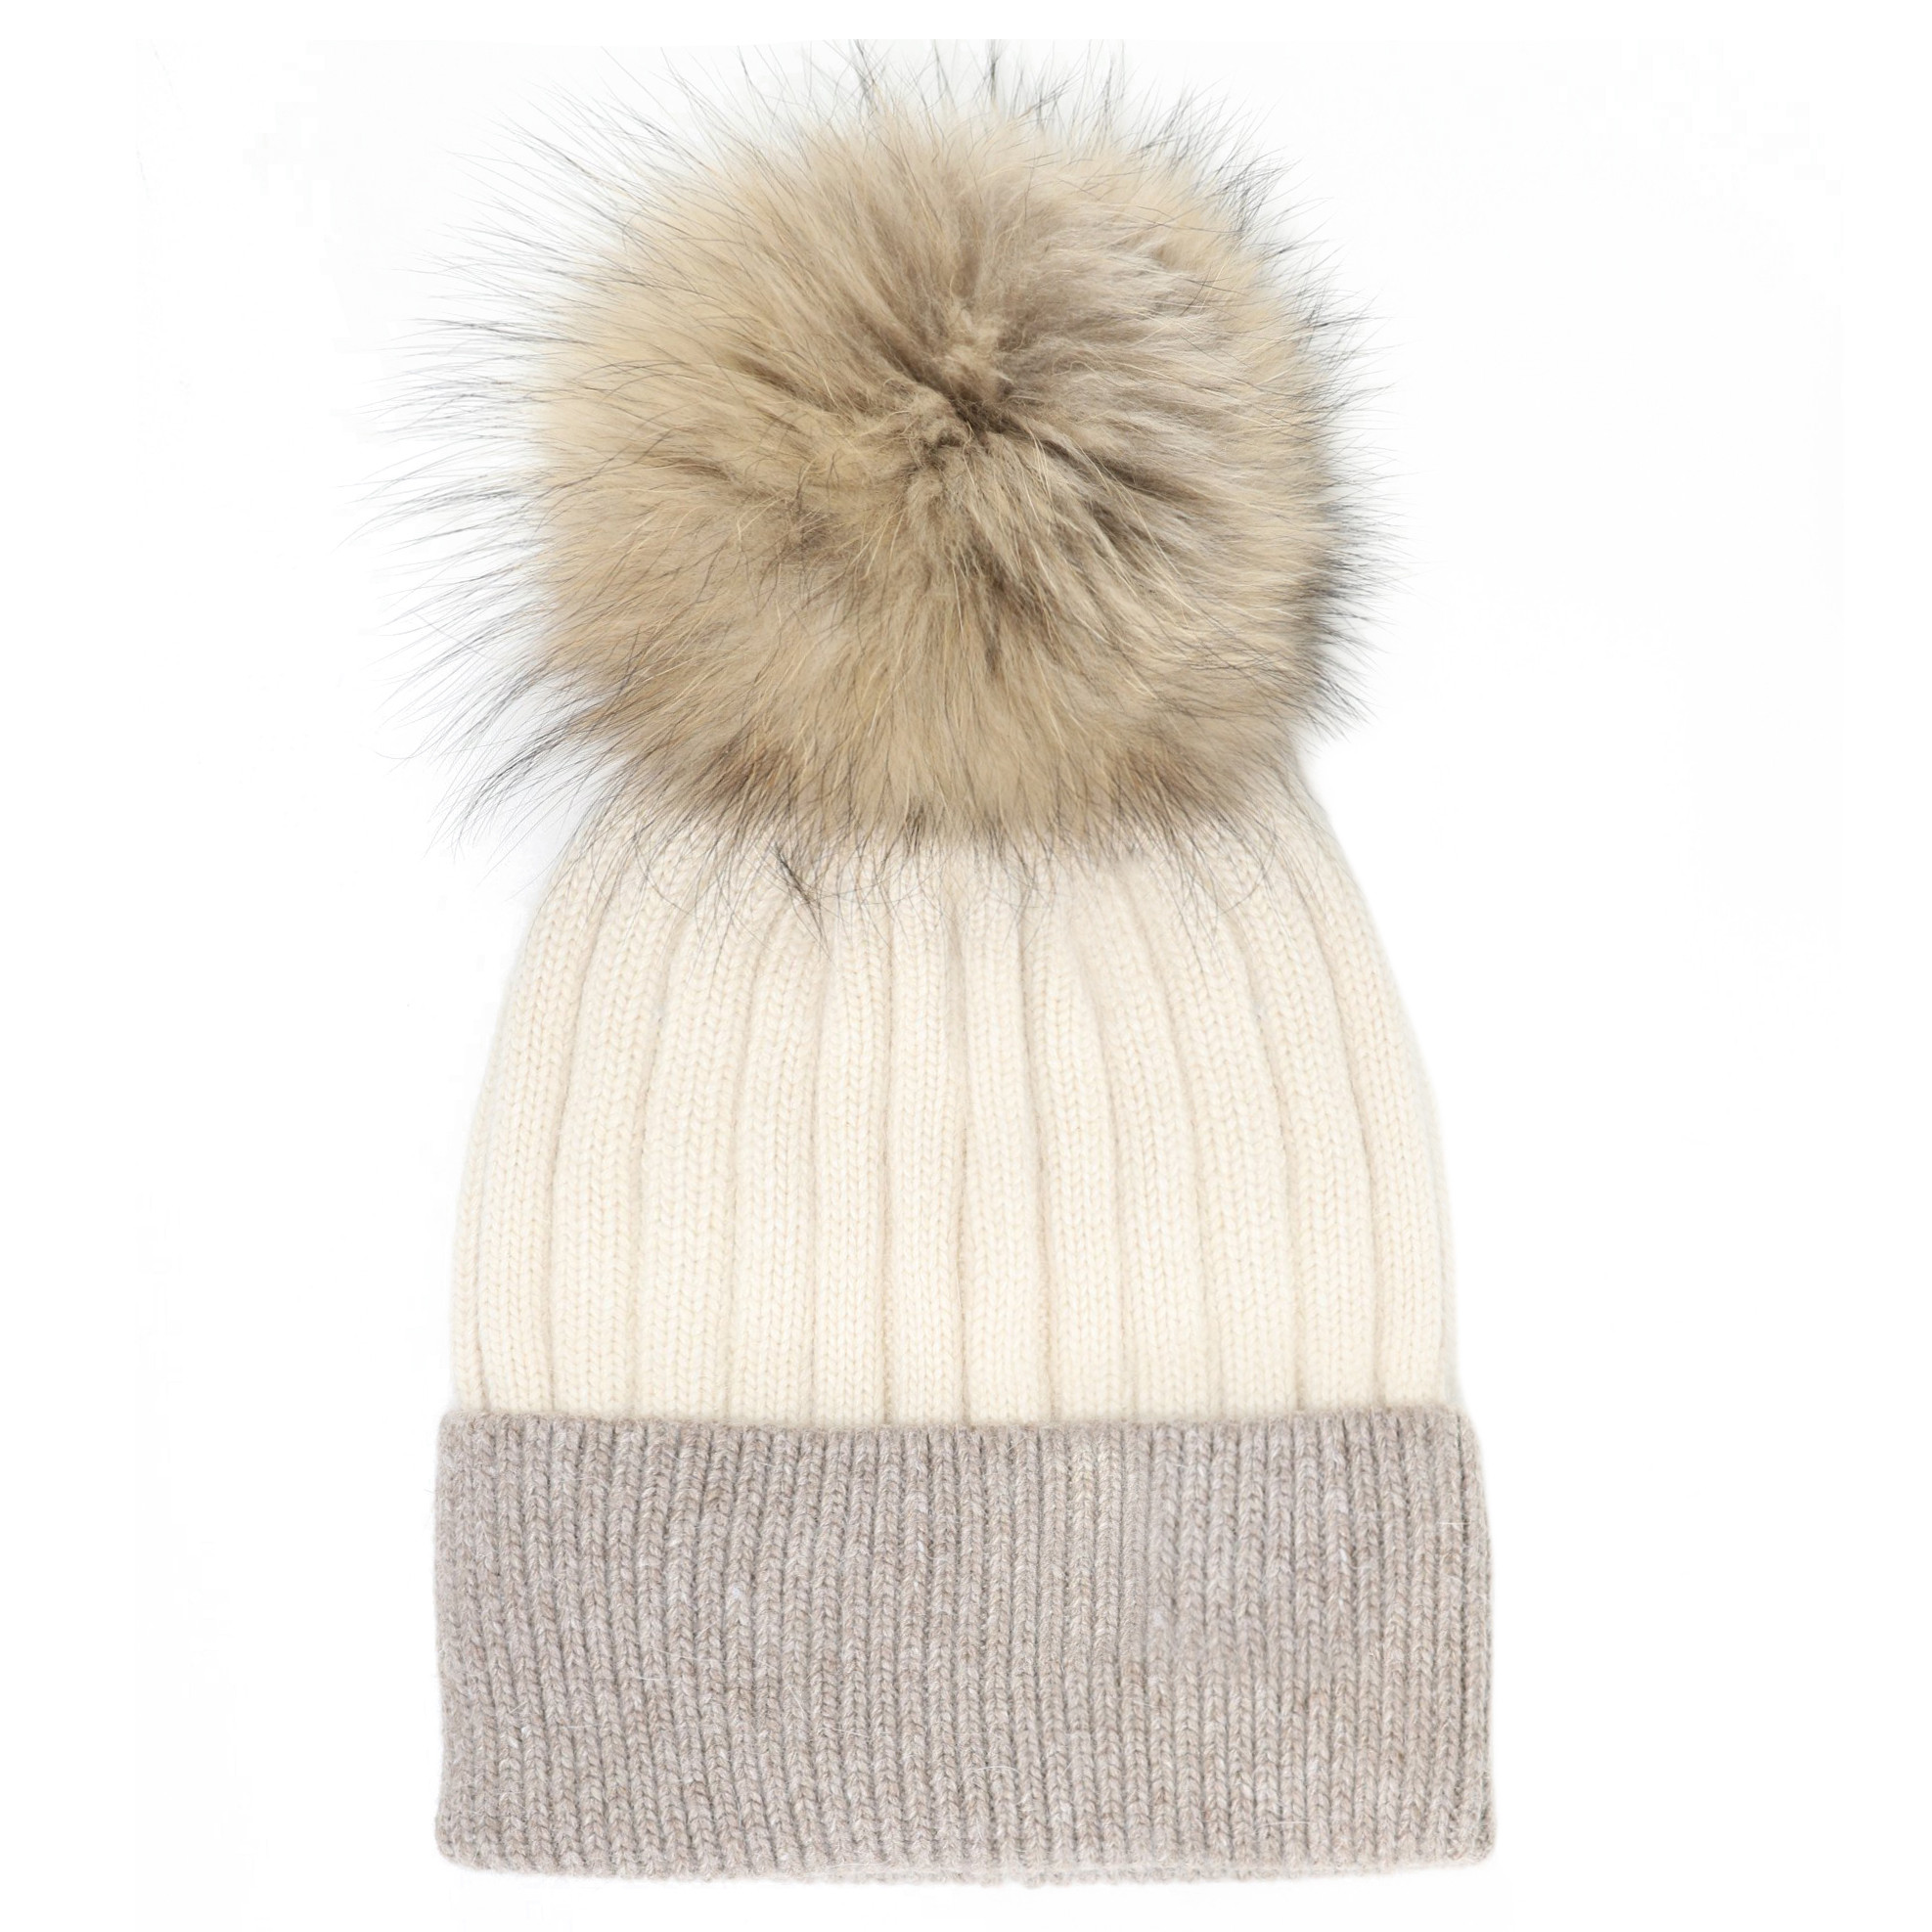 ab1890c1 Two Tone Beanie Hat with Fur Pom-pom in Beige & Taupe | Product sku Z-179916